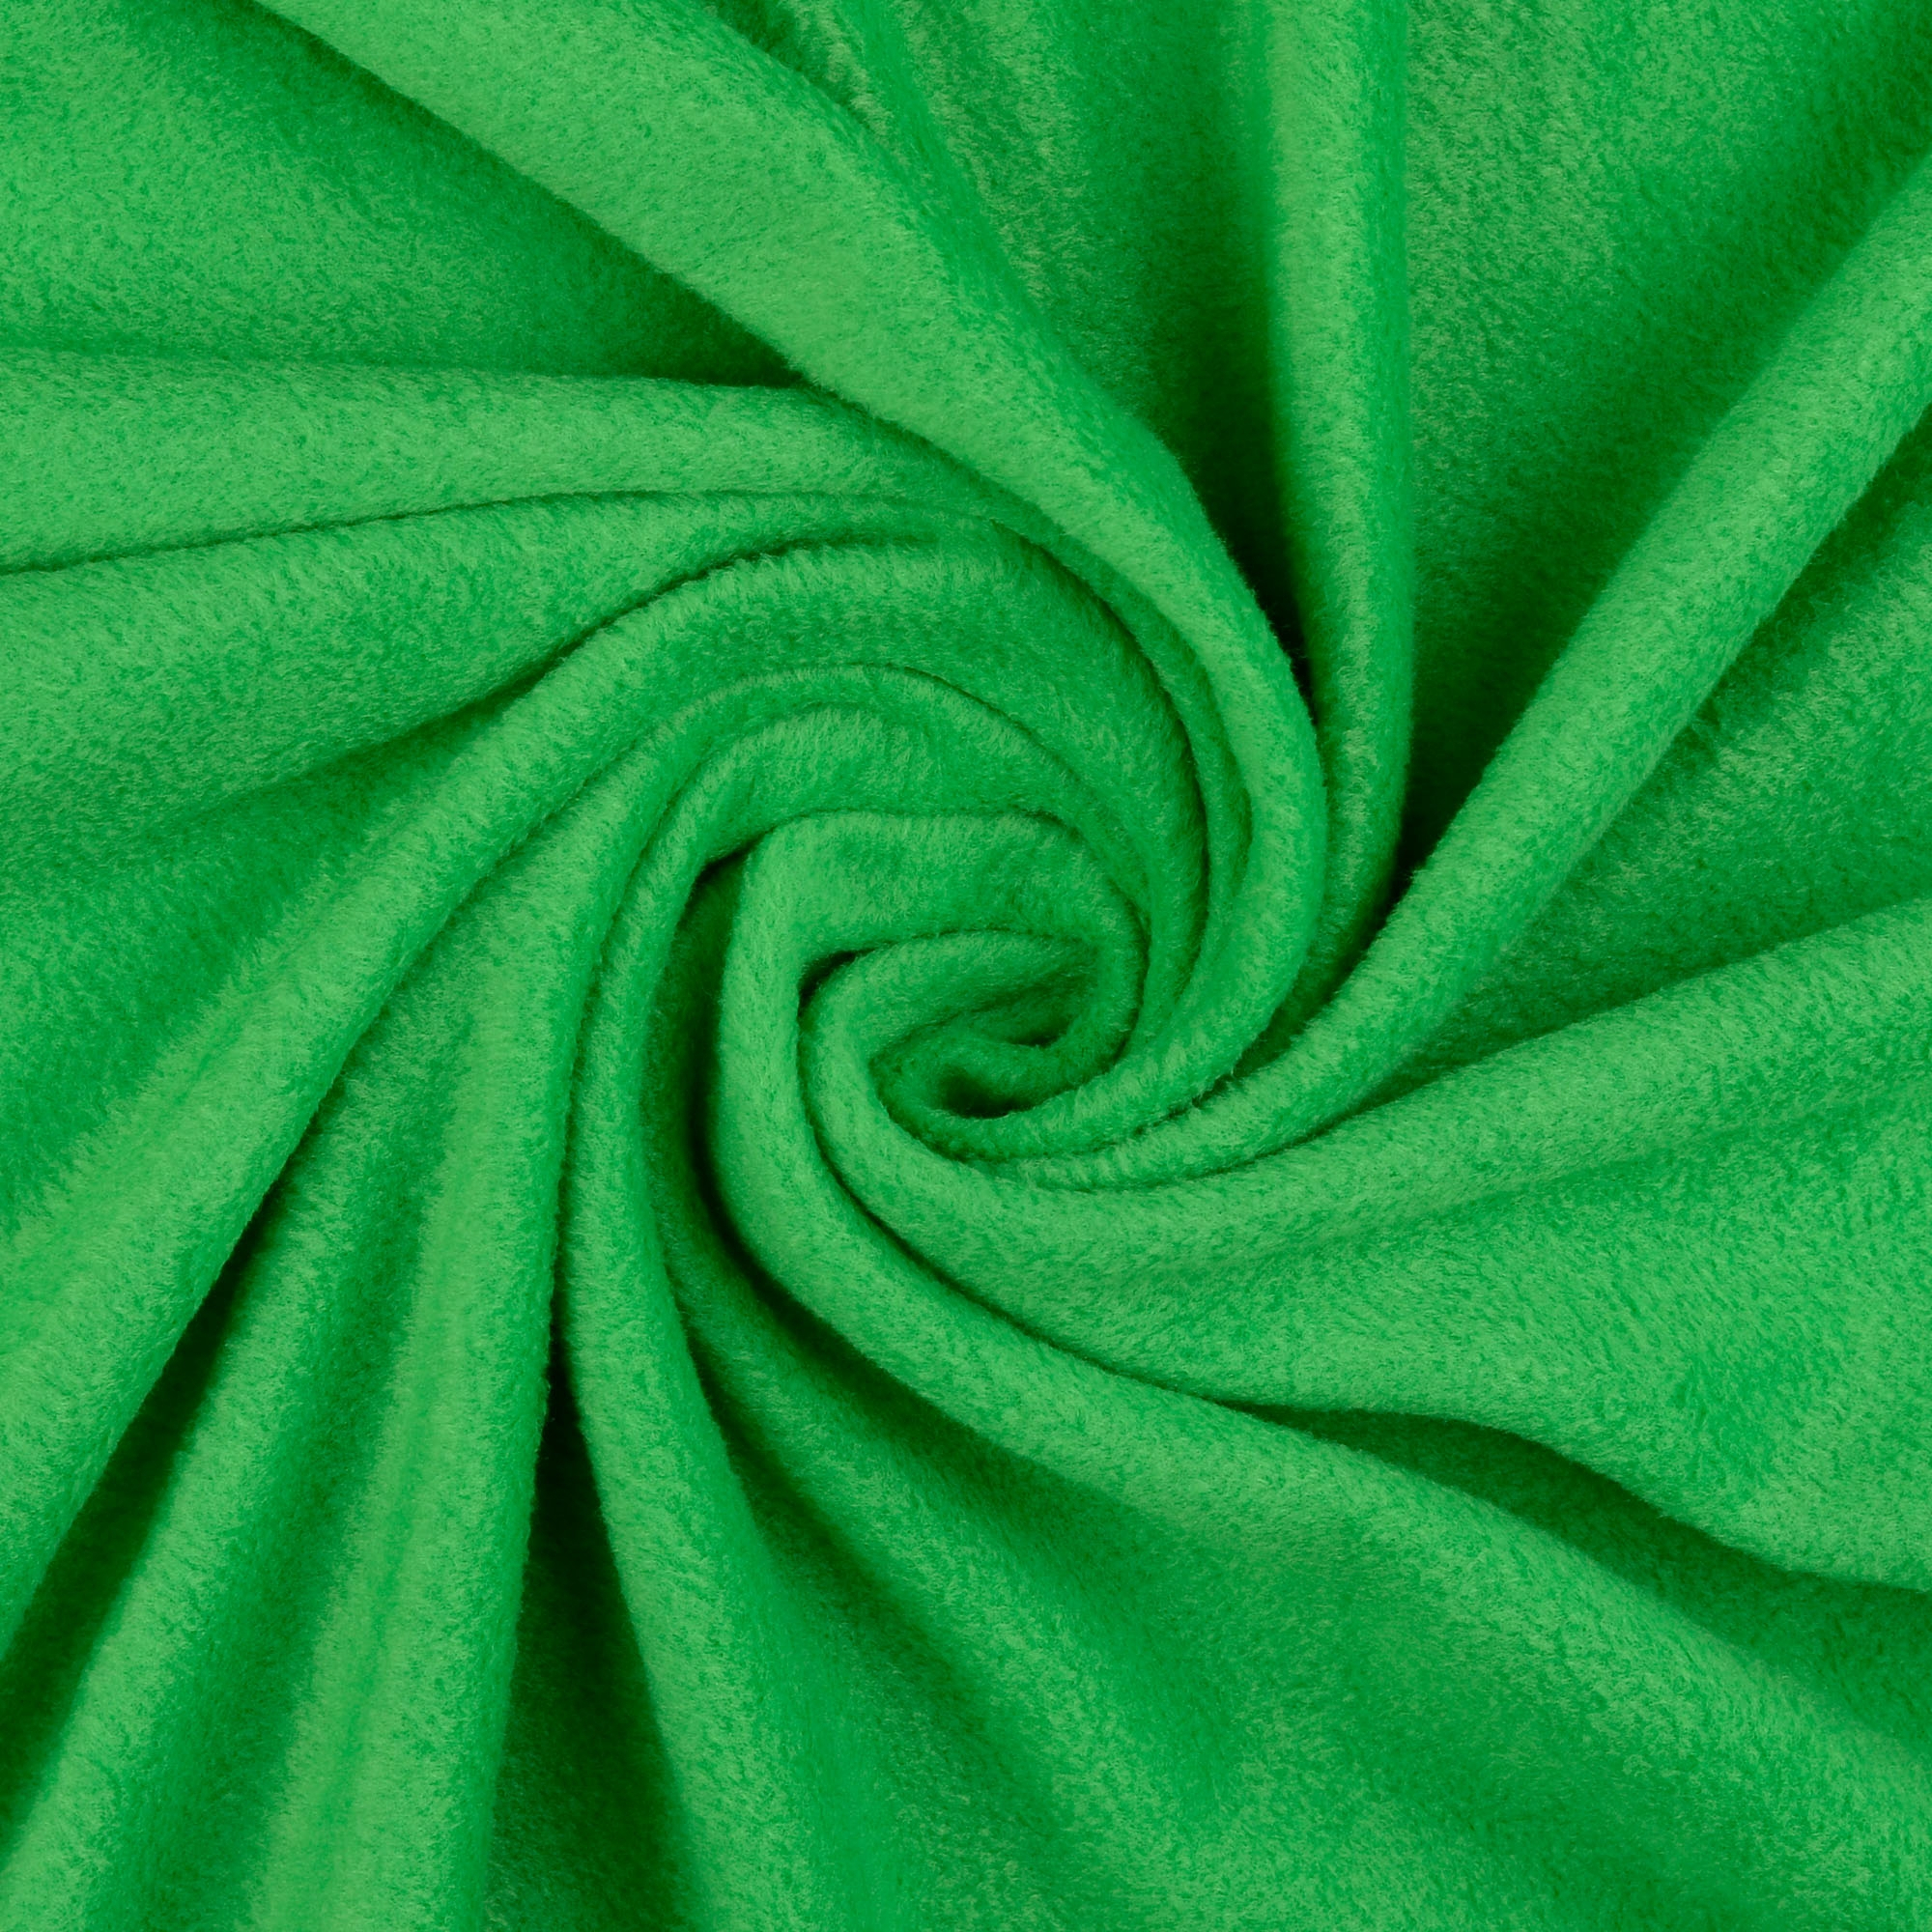 Fleece antipilling groen | 110.704-5034 | grün